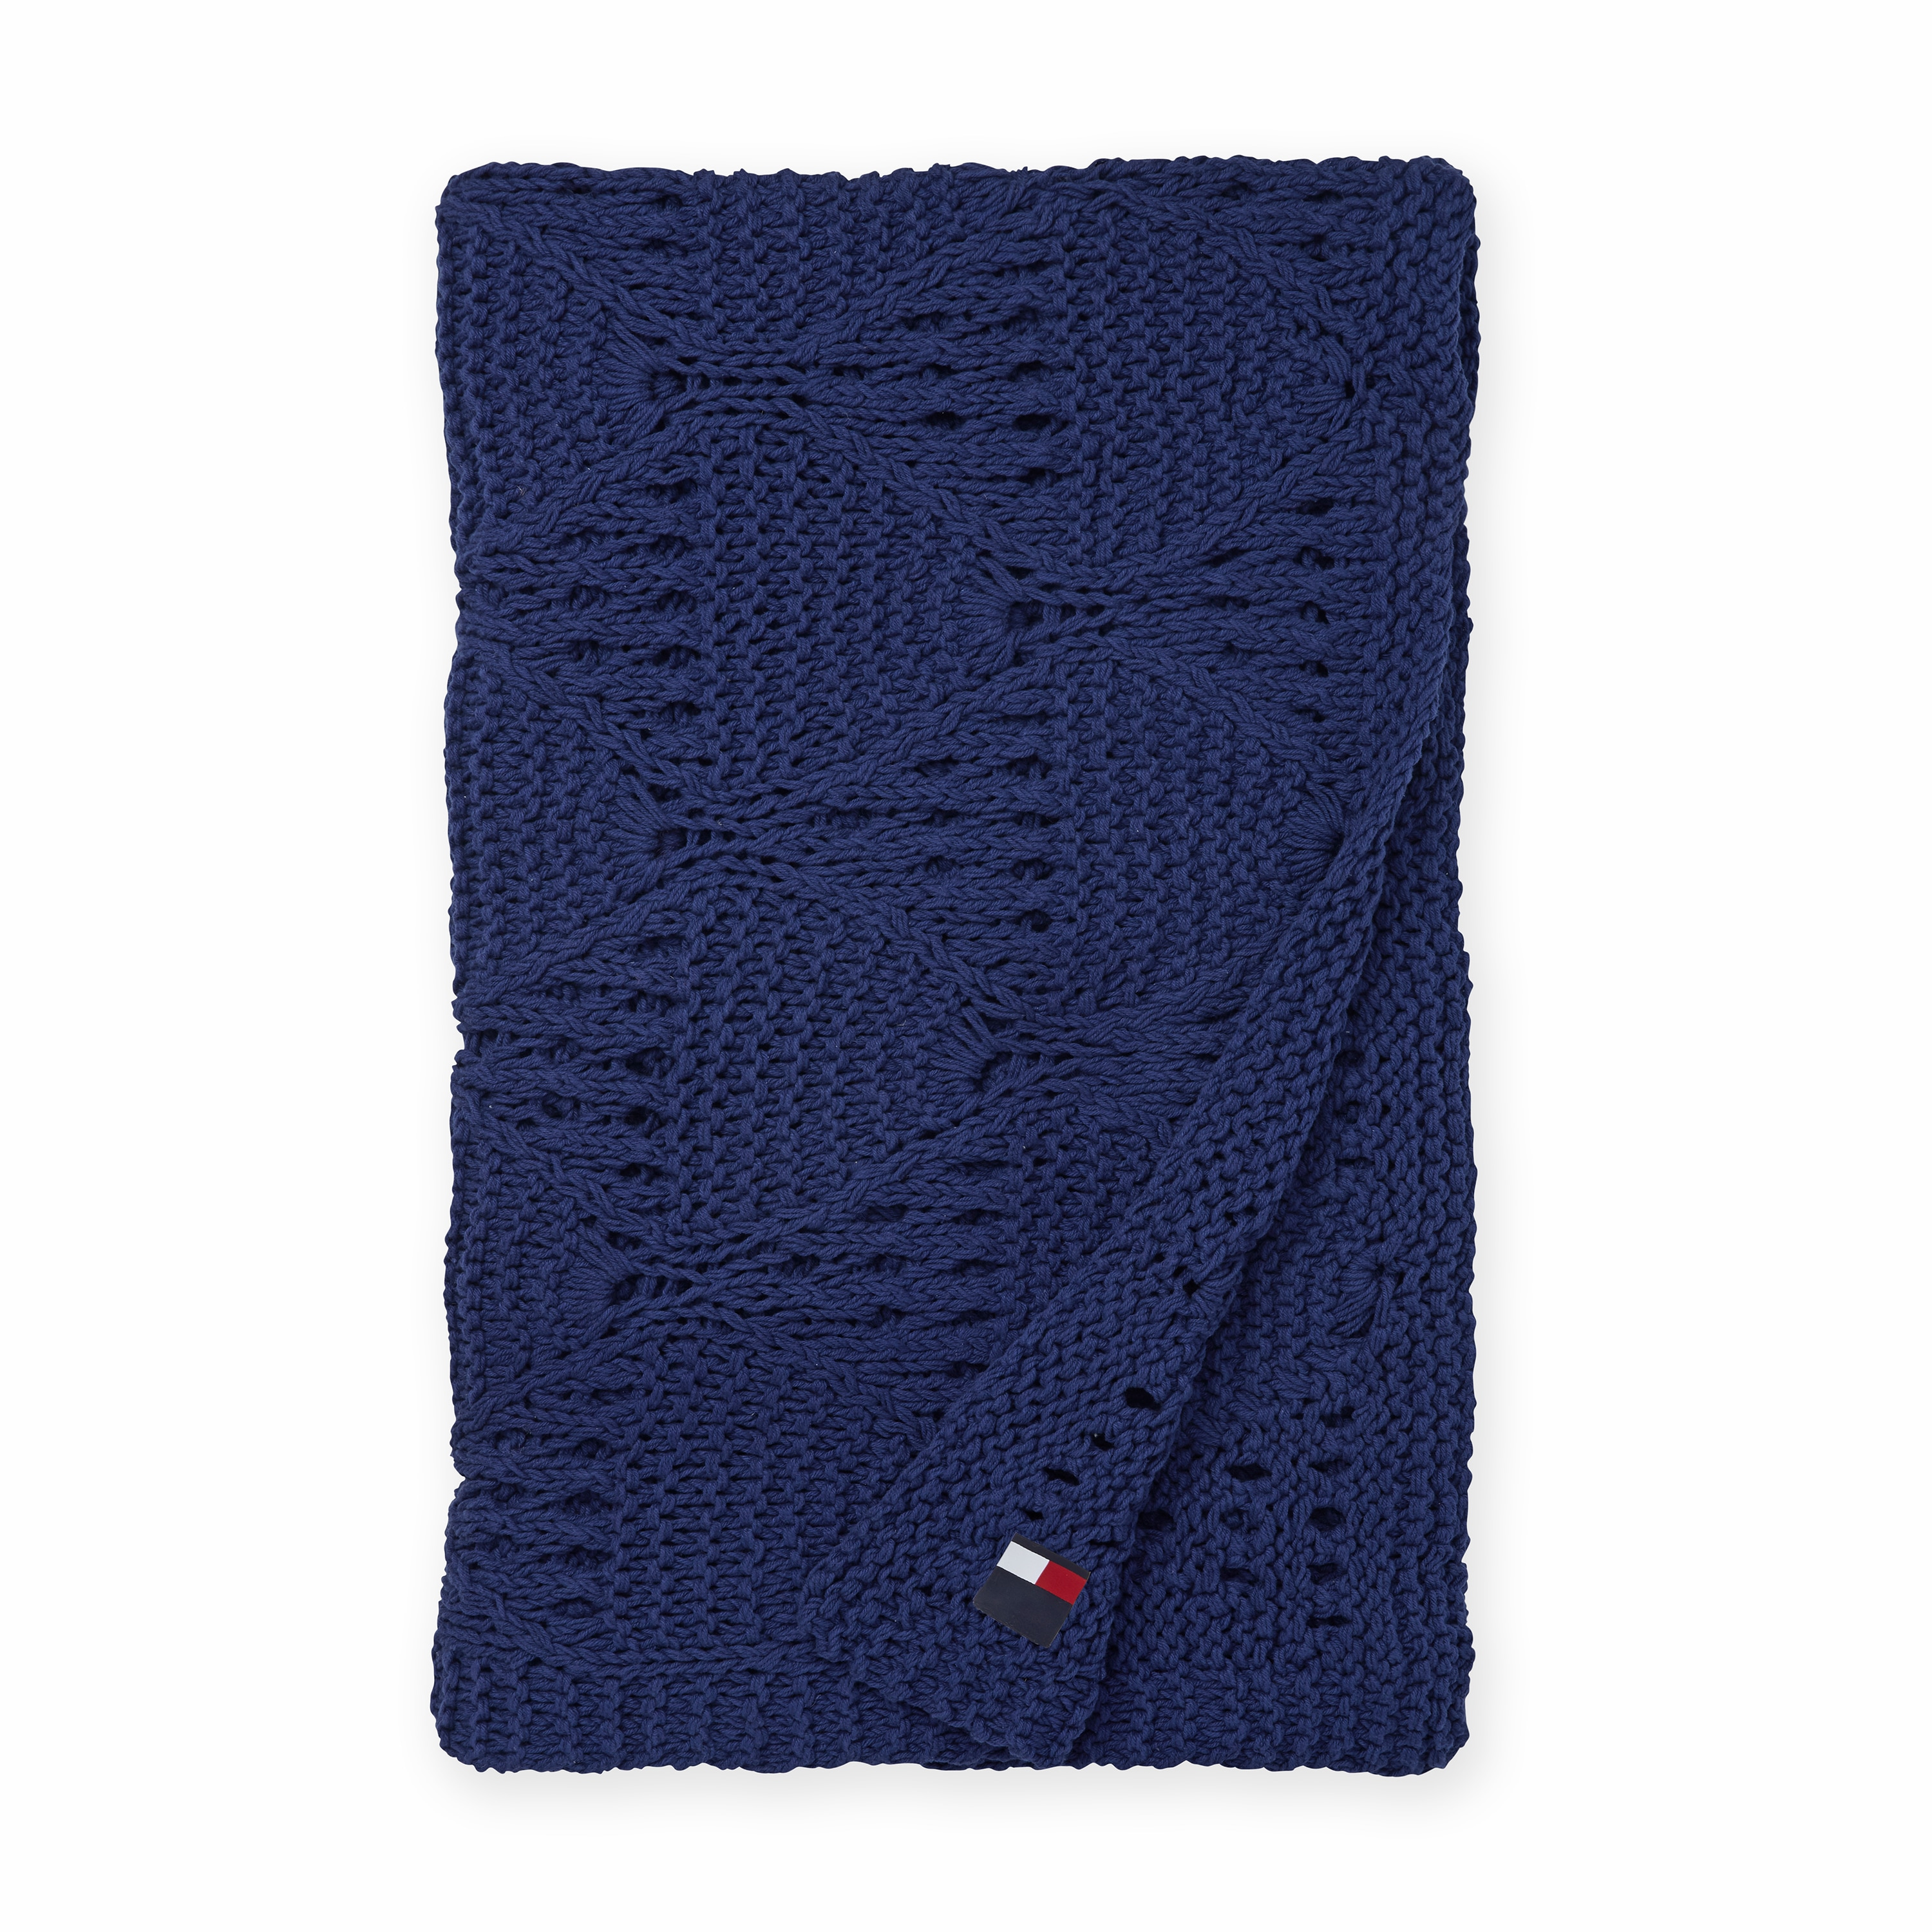 985ce612 Shop Tommy Hilfiger Bar Harbor Throw - Free Shipping Today - Overstock -  9684084